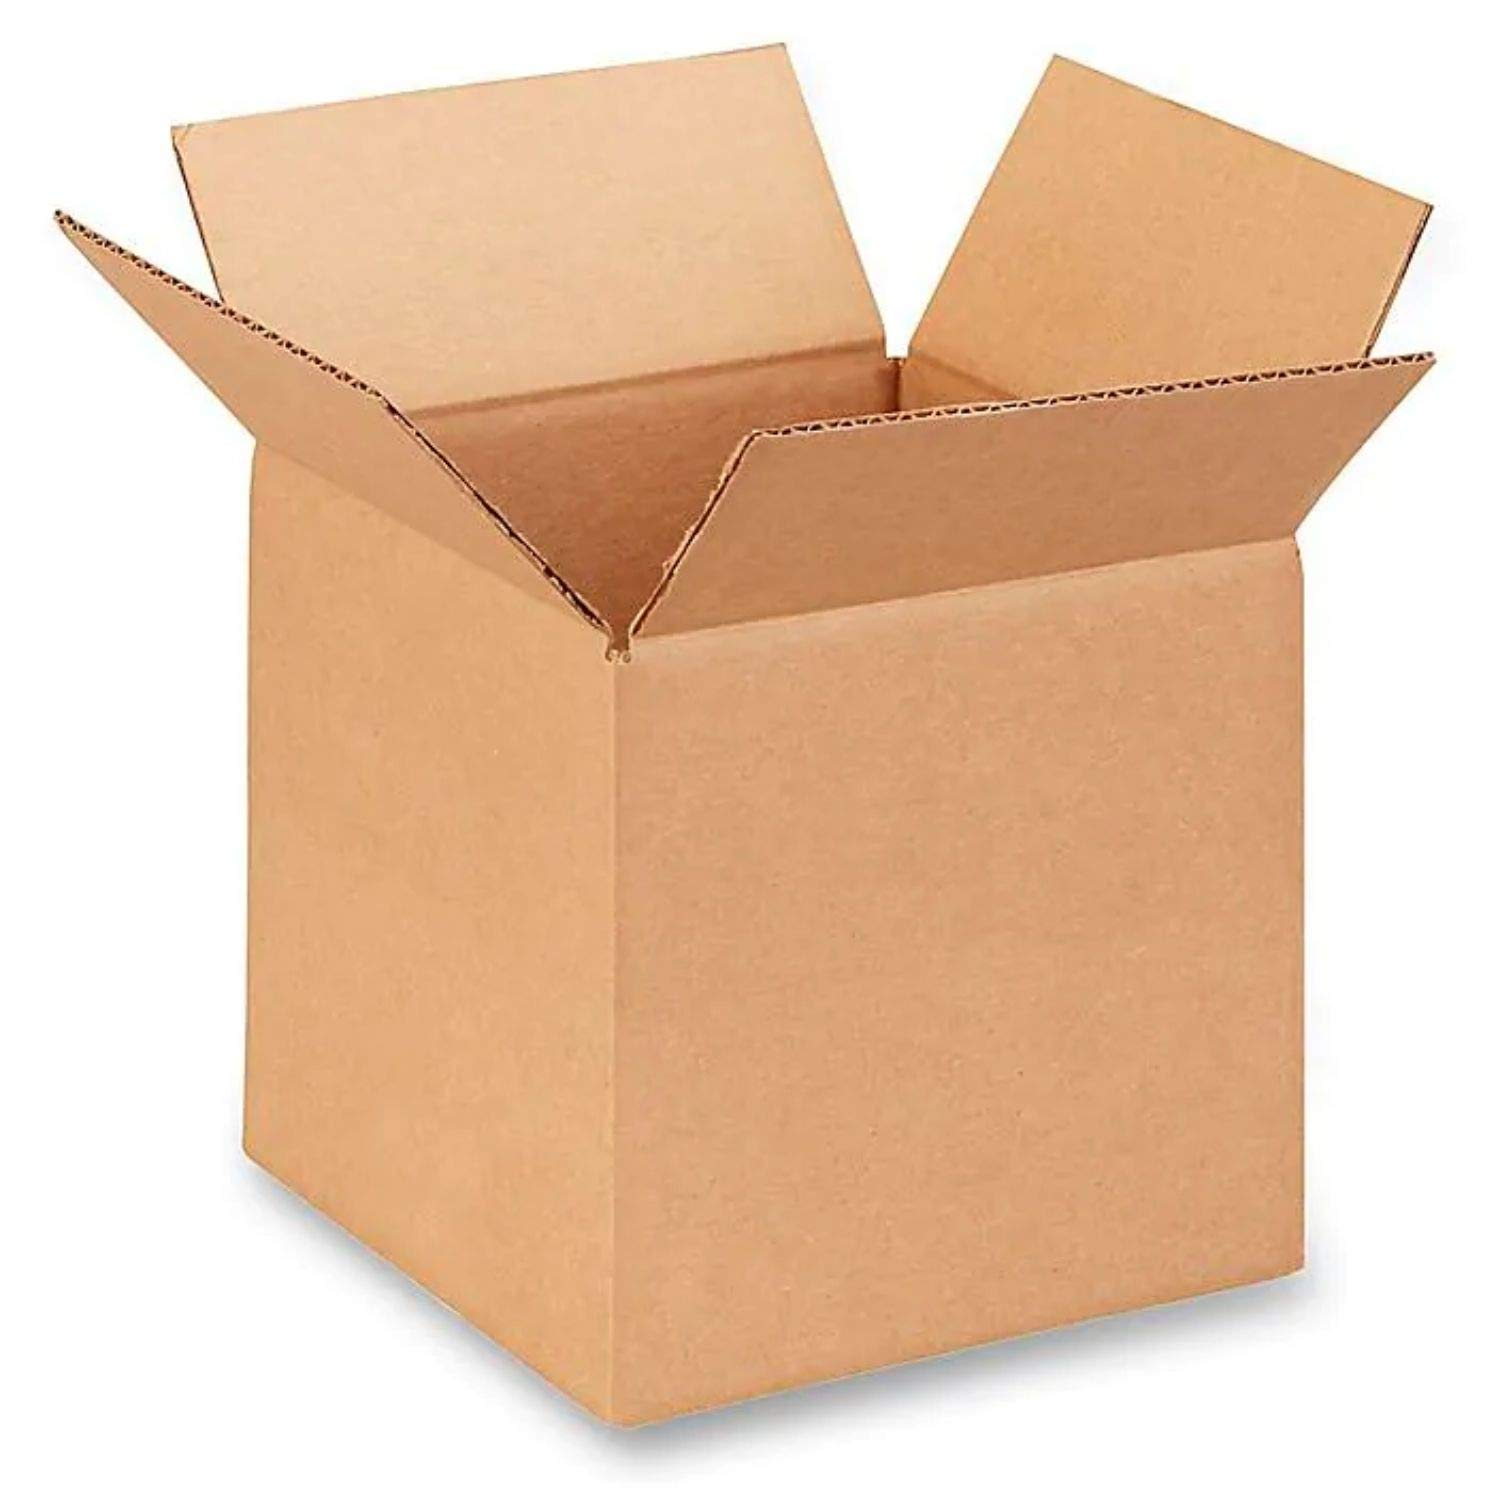 """IDL Packaging Cube Corrugated Shipping Boxes 10""""L x 10""""W x 10""""H (Pack of 5) - Excellent Choice of Sturdy Packing Boxes for USPS, UPS, FedEx Shipping,B-101010-5"""